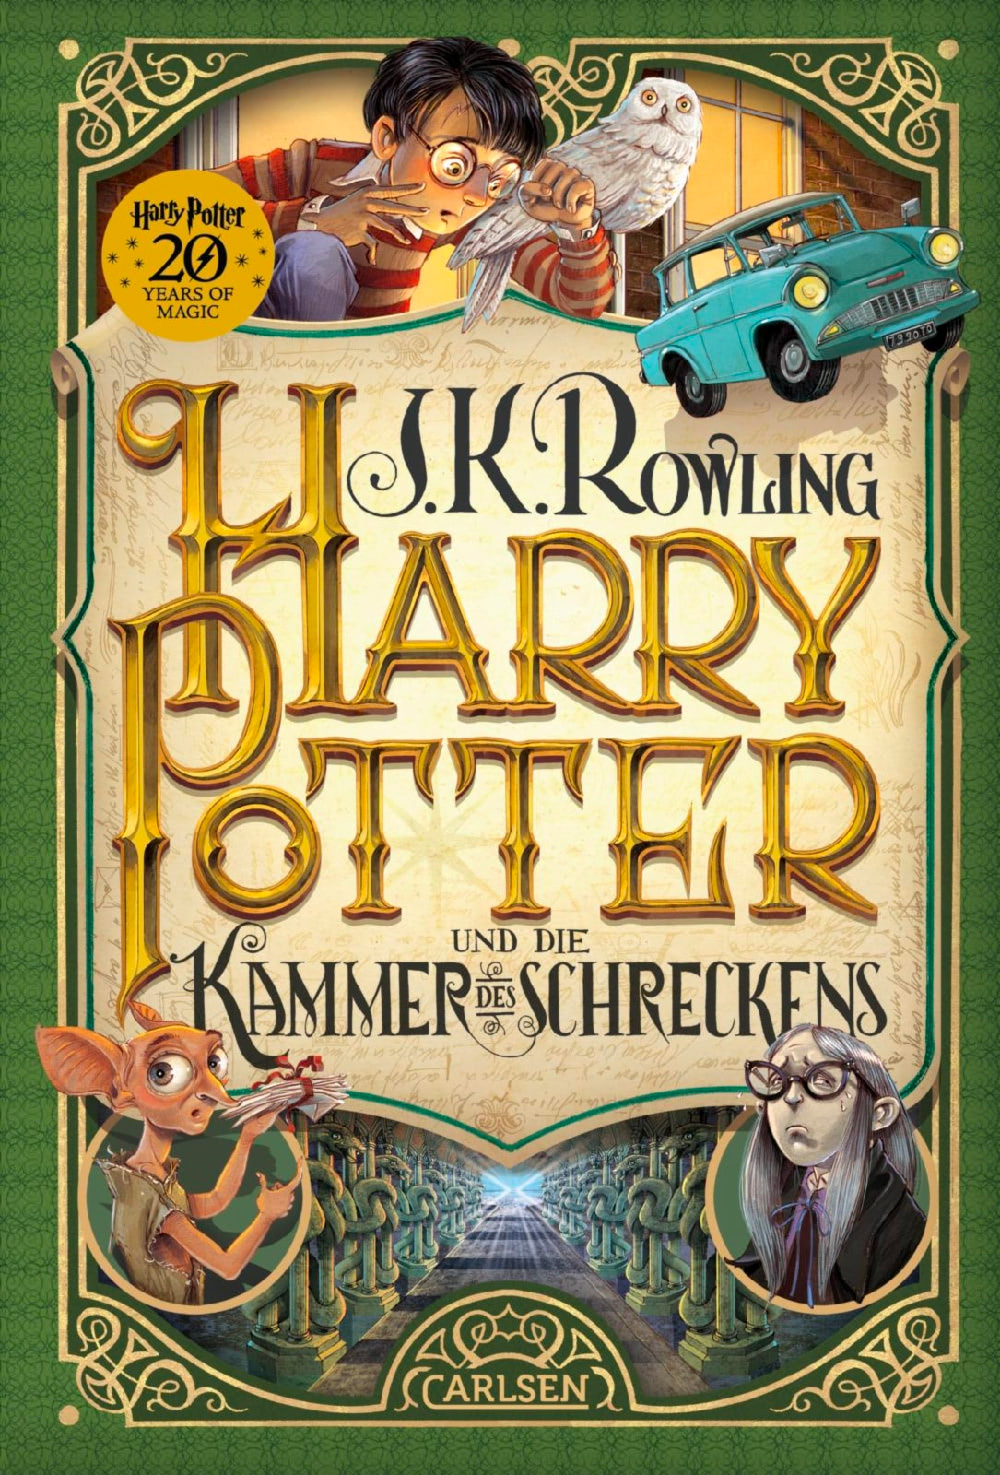 'Chamber of Secrets' German '20 Years of Magic' edition